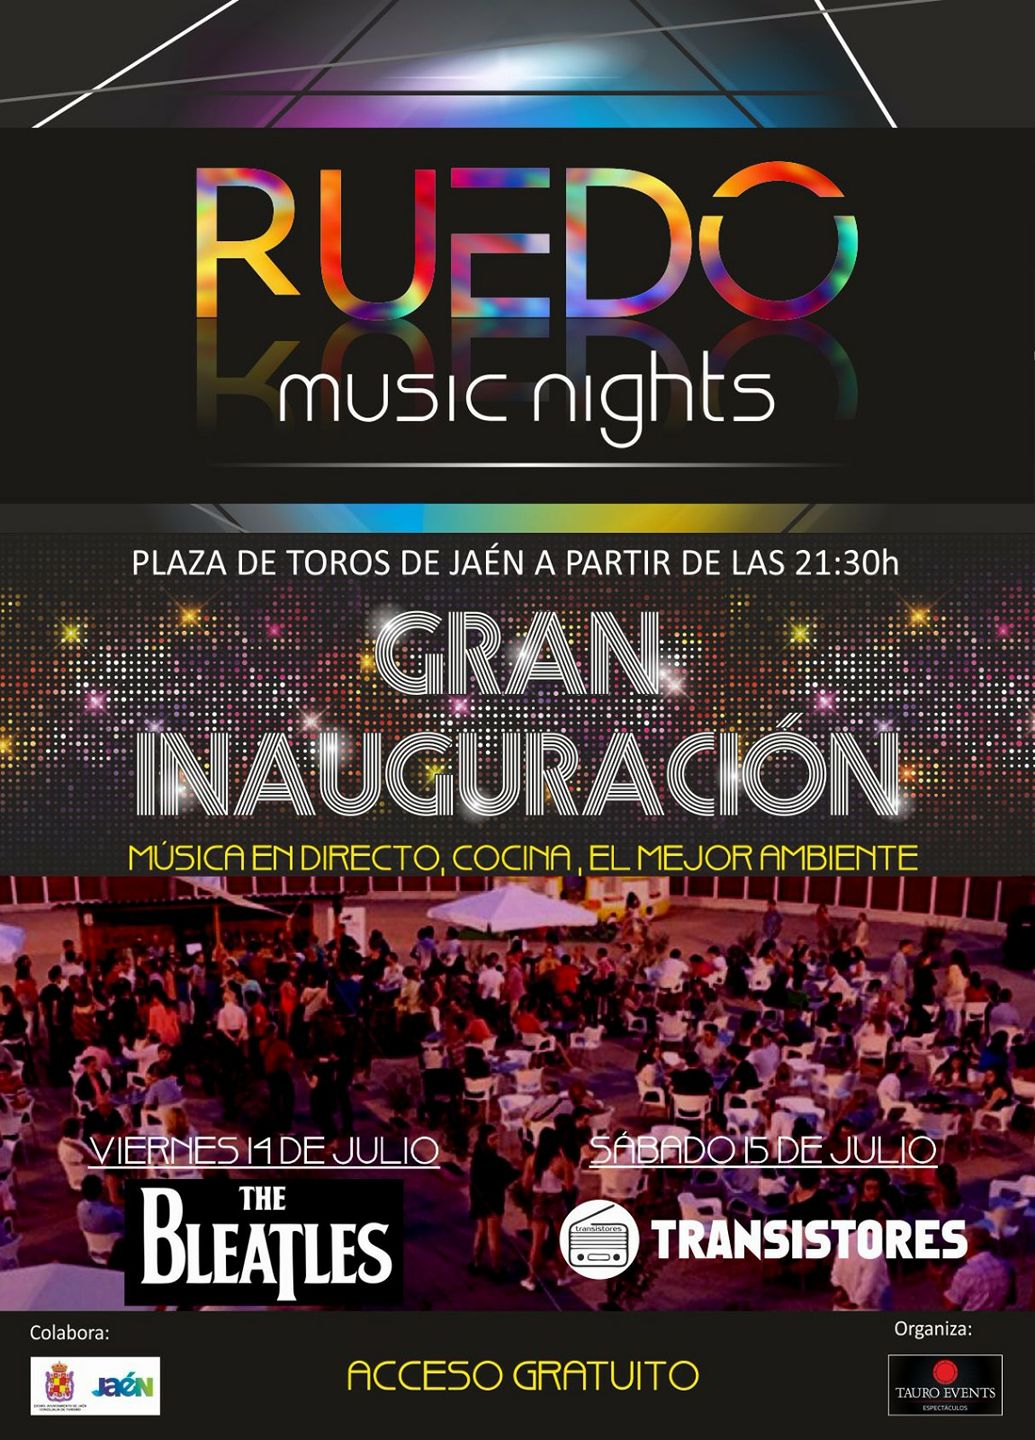 Ruedo music night Jaén 24h